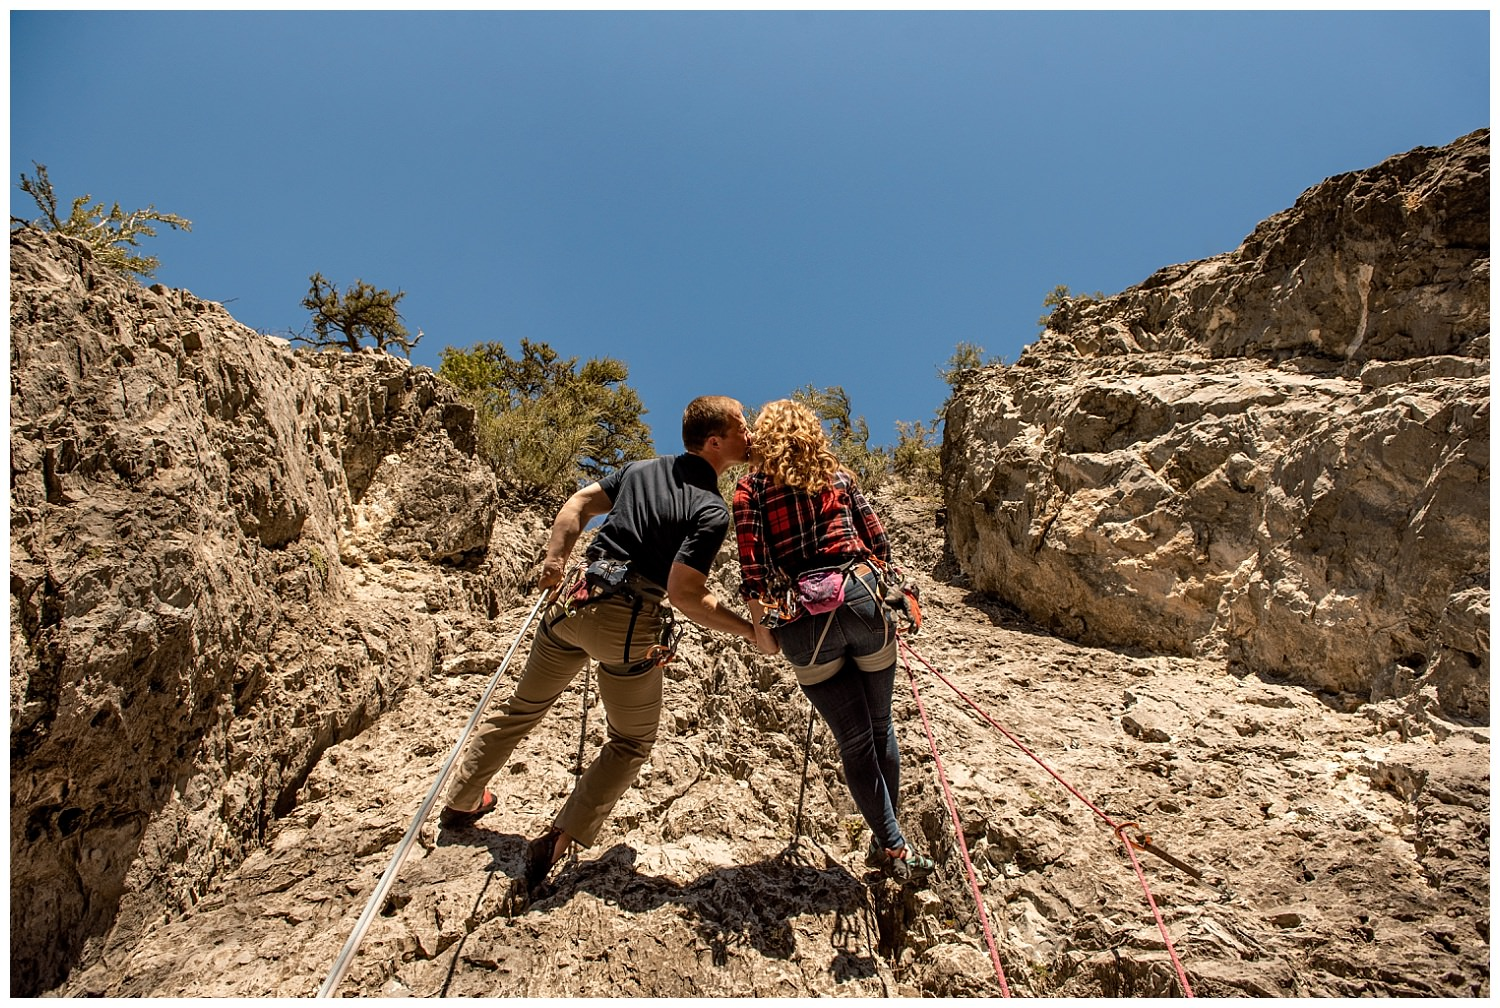 Dan Page Photography, Rock Climbing Engagement Adventure Session, Rock Canyon, Provo (11).jpg